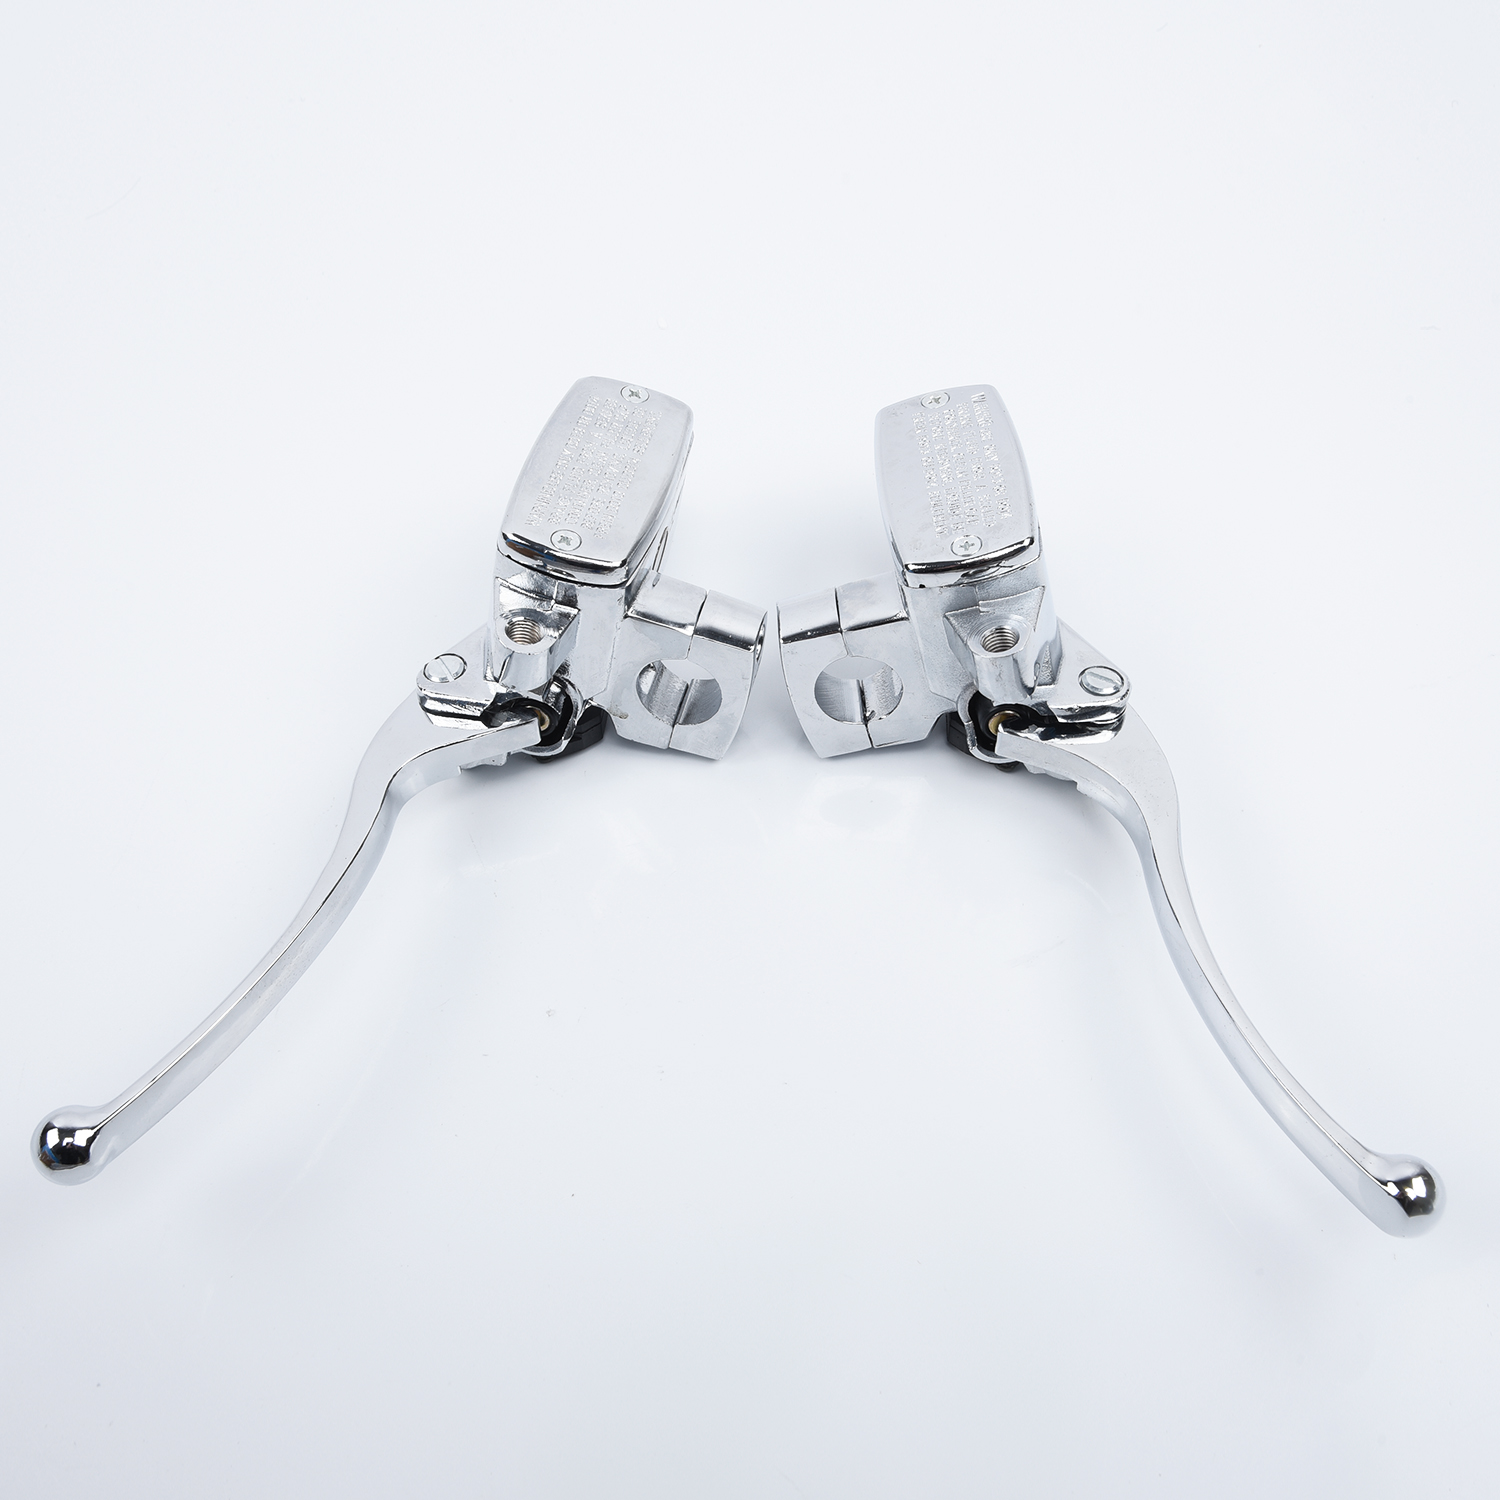 Chrome Brake Master Cylinder Clutch Levers For Suzuki Intruder 800 1400 1500  Improving The Safety And Durability|Front & Rear Wheel Brake Cylinder| |  - title=